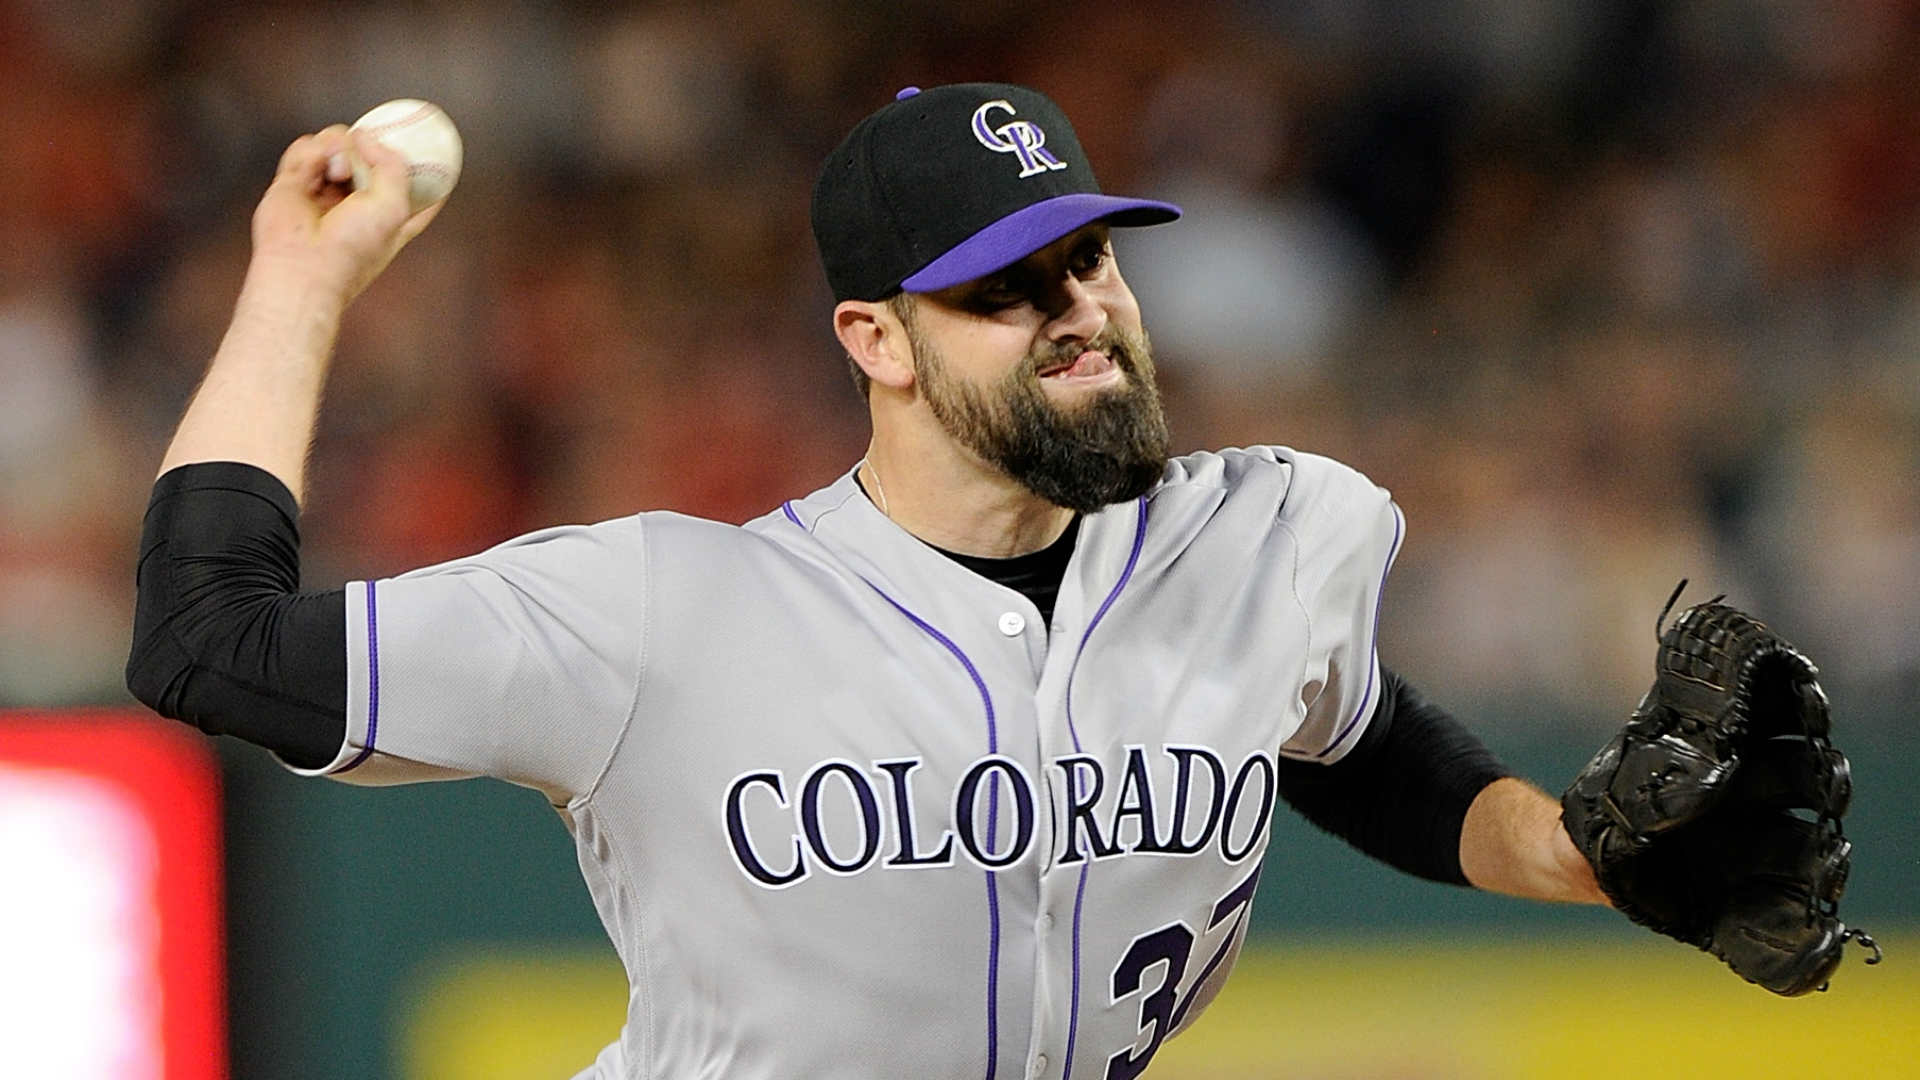 Pat Neshek roasts Zack Greinke for turning down autograph request